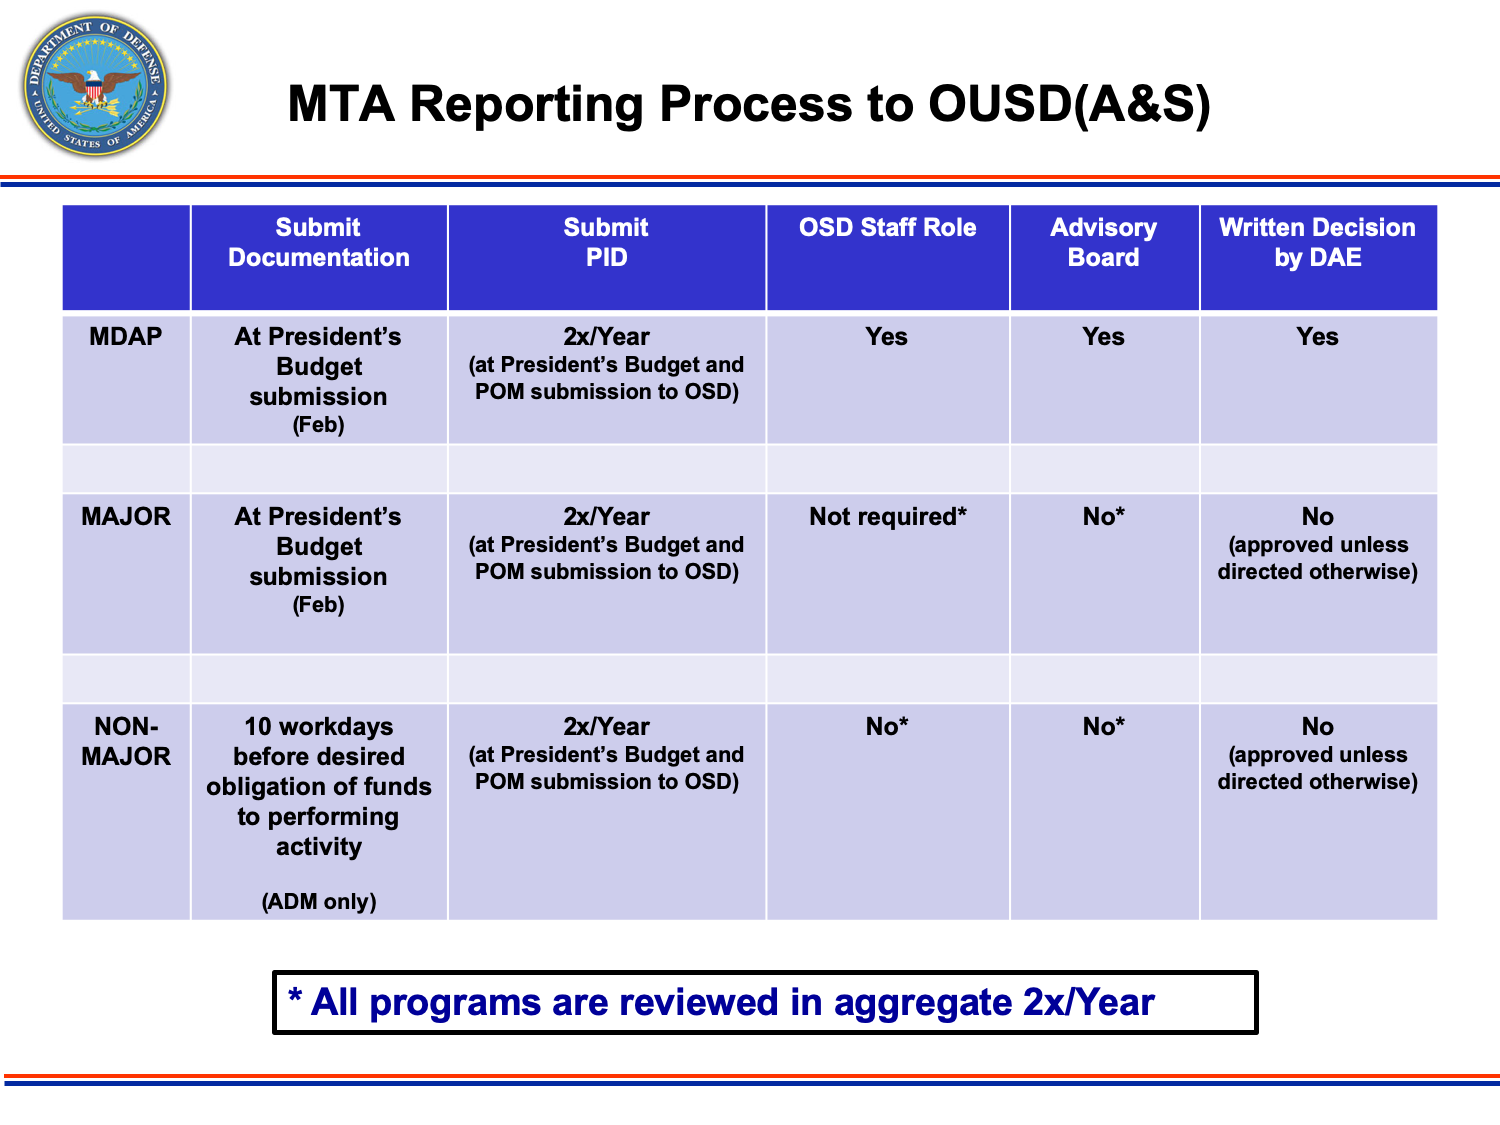 MTA Reporting Process to OUSD(A&S). MDAPs must submit documentation at President's Budget submission (Feb); submit PID 2x/year (at President's Budget and POM submissions to OSD); Yes, required for OSD Staff role; Yes, required for Advisory board; and Yes, requires written decision by DAE. Major systems must submit documentation at President's Budget submission (Feb); submit PID 2x/year (at President's Budget and POM submissions to OSD); Not required for OSD Staff role; No, not required for Advisory board; and No, does not require written decision by DAE. Non-major systems must submit documentation 10 workdays before desired obligation of funds to performing activity (ADM only); submit PID 2x/year (at President's Budget and POM submissions to OSD); Not required for OSD Staff role; No, not required for Advisory board; and No, does not require written decision by DAE.